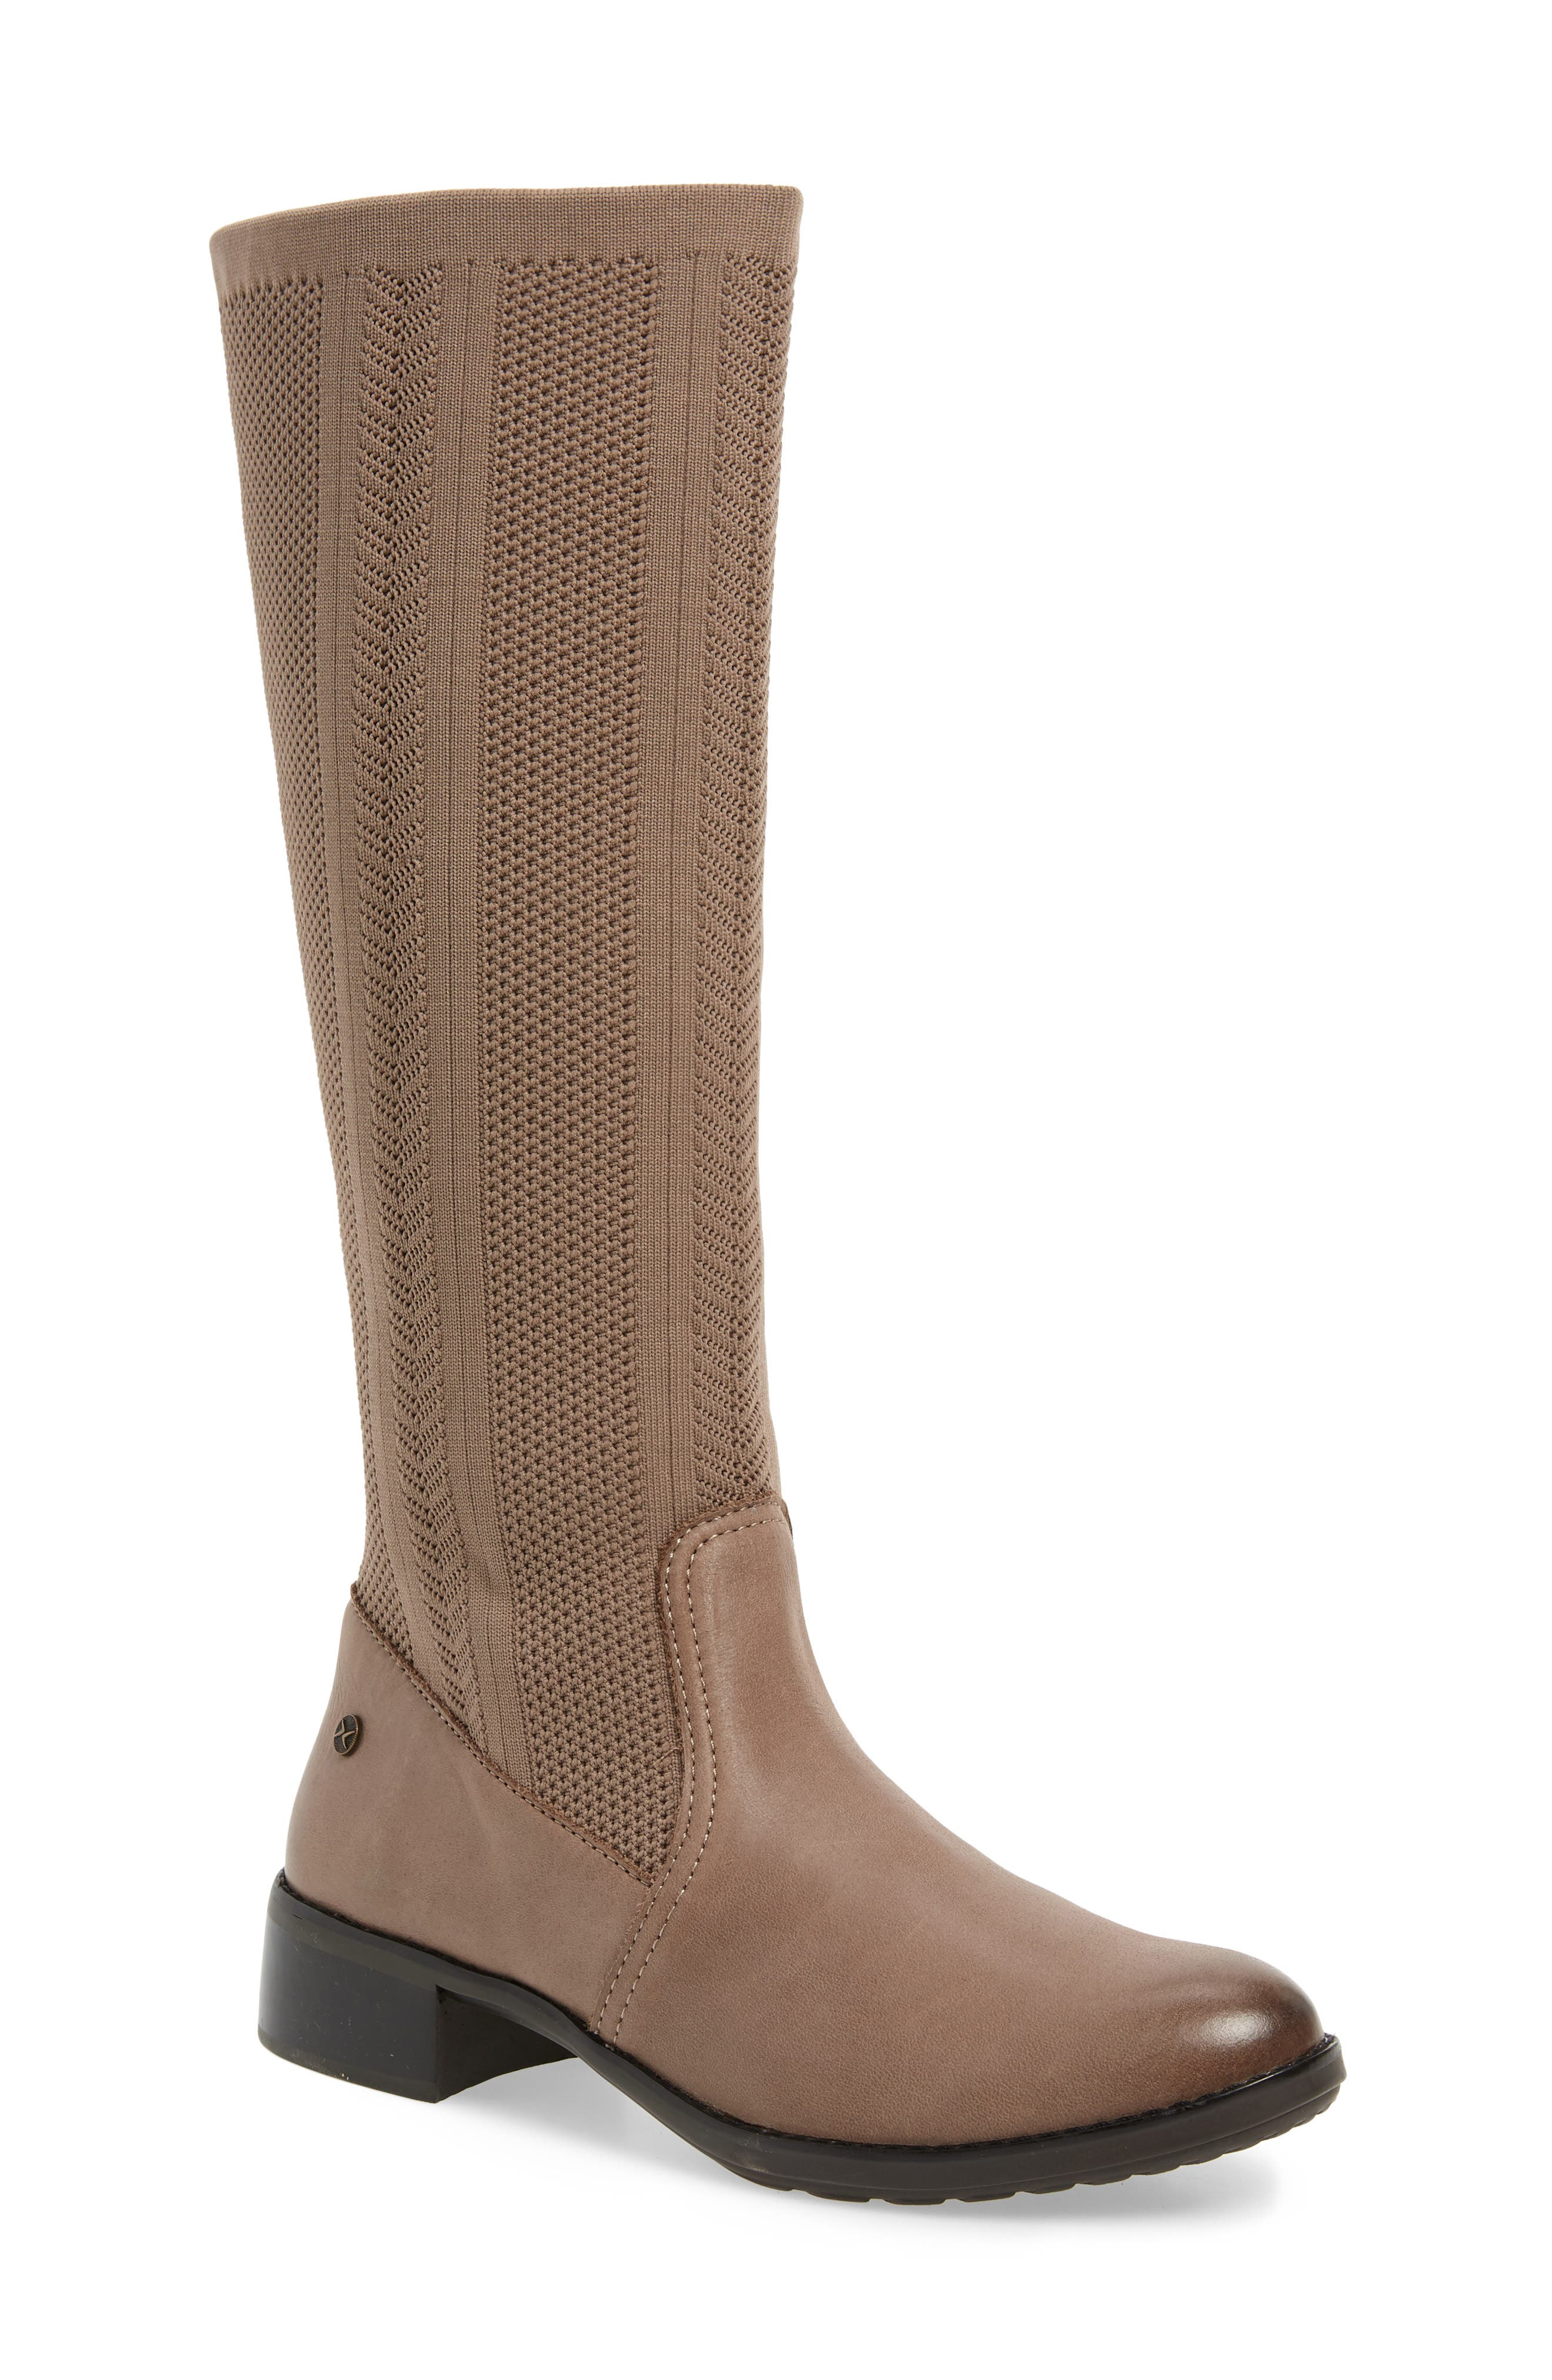 AETREX, Belle Sock Knit Shaft Boot, Main thumbnail 1, color, TAN LEATHER